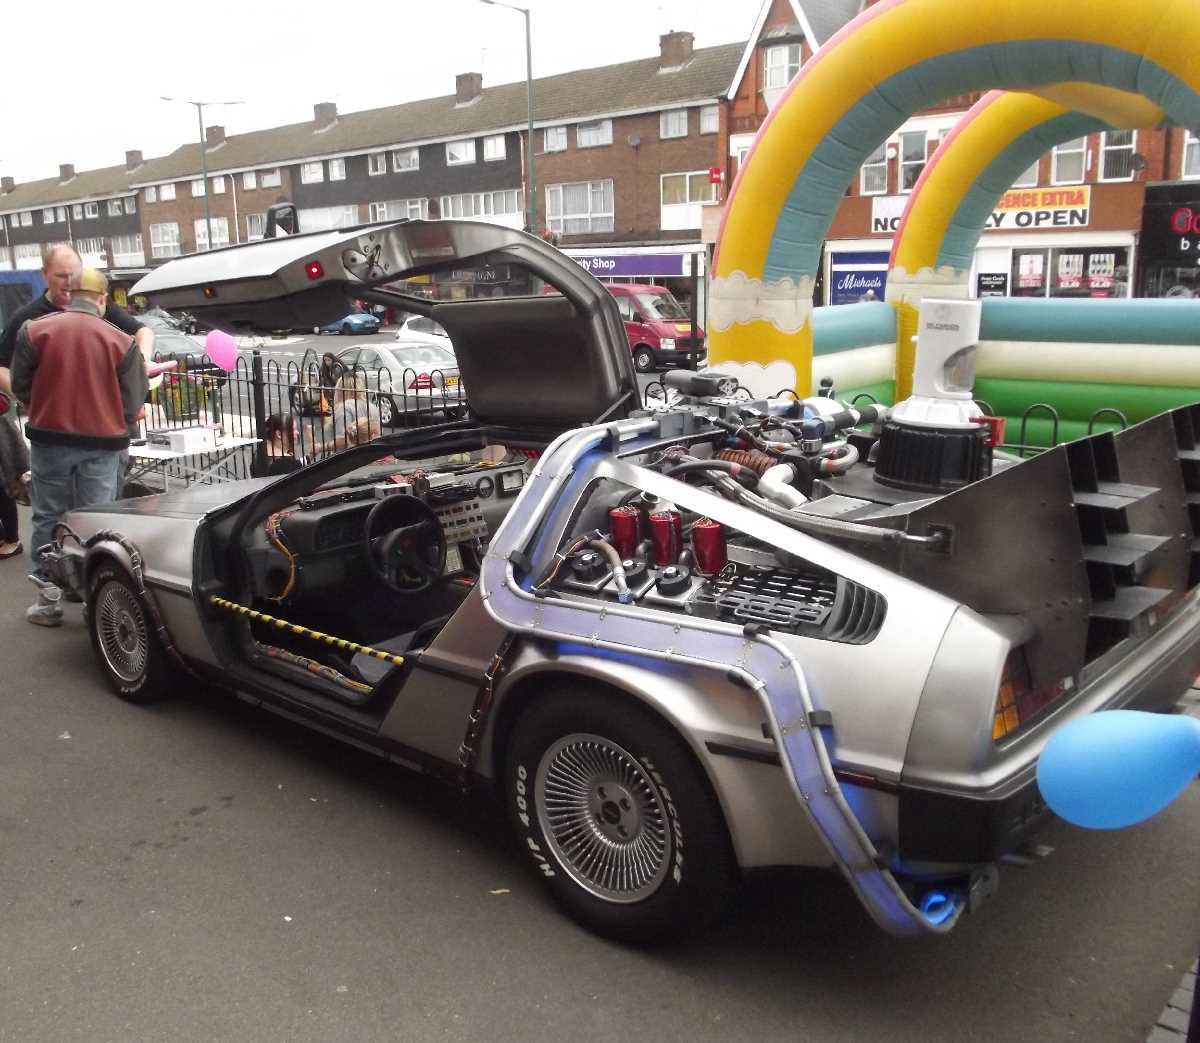 BTTF DeLorean in Acocks Green